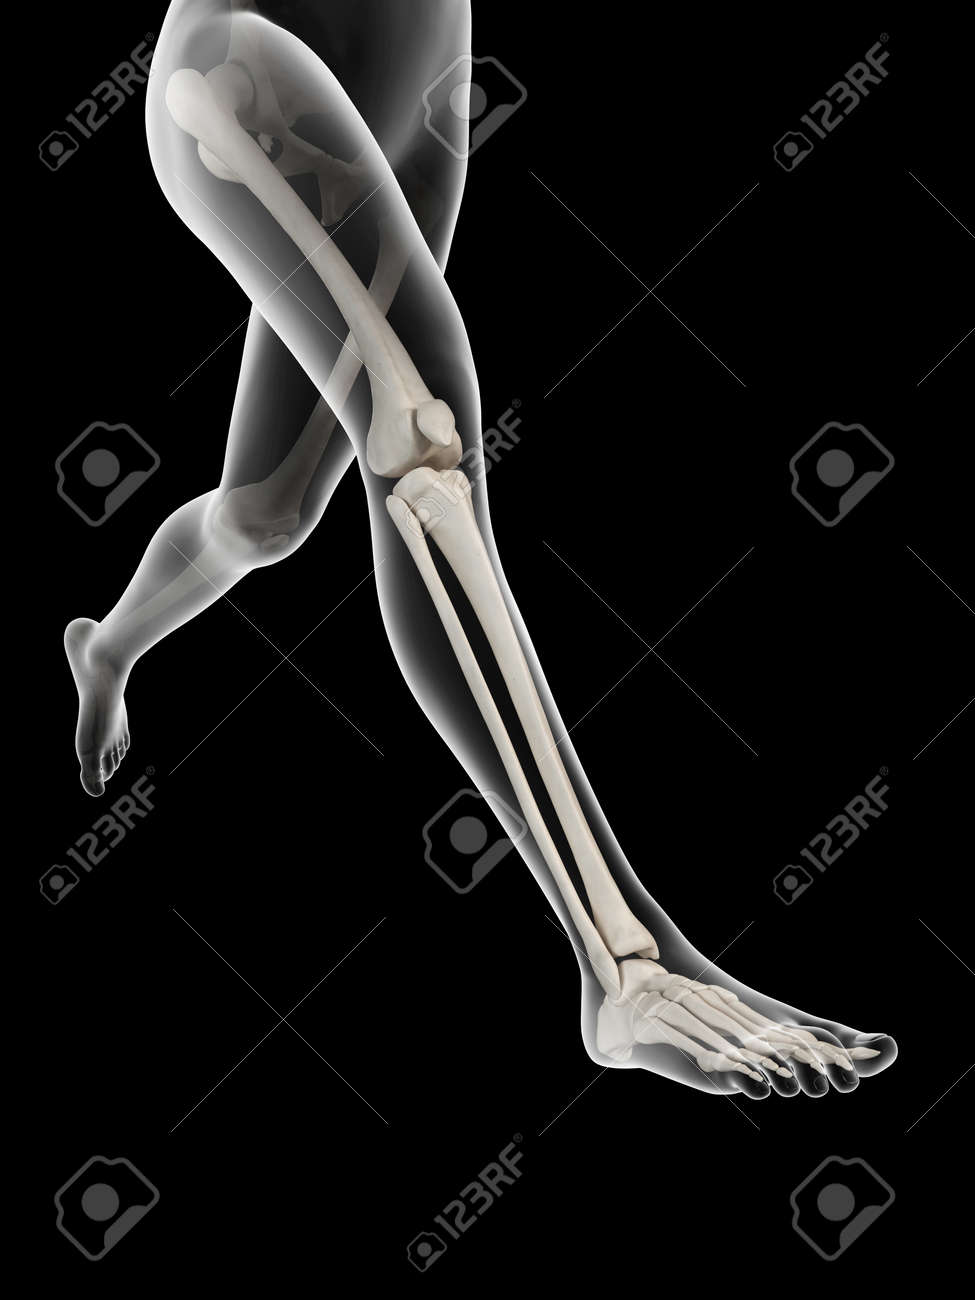 Woman Running Visible Anatomy Of The Leg Bones Stock Photo